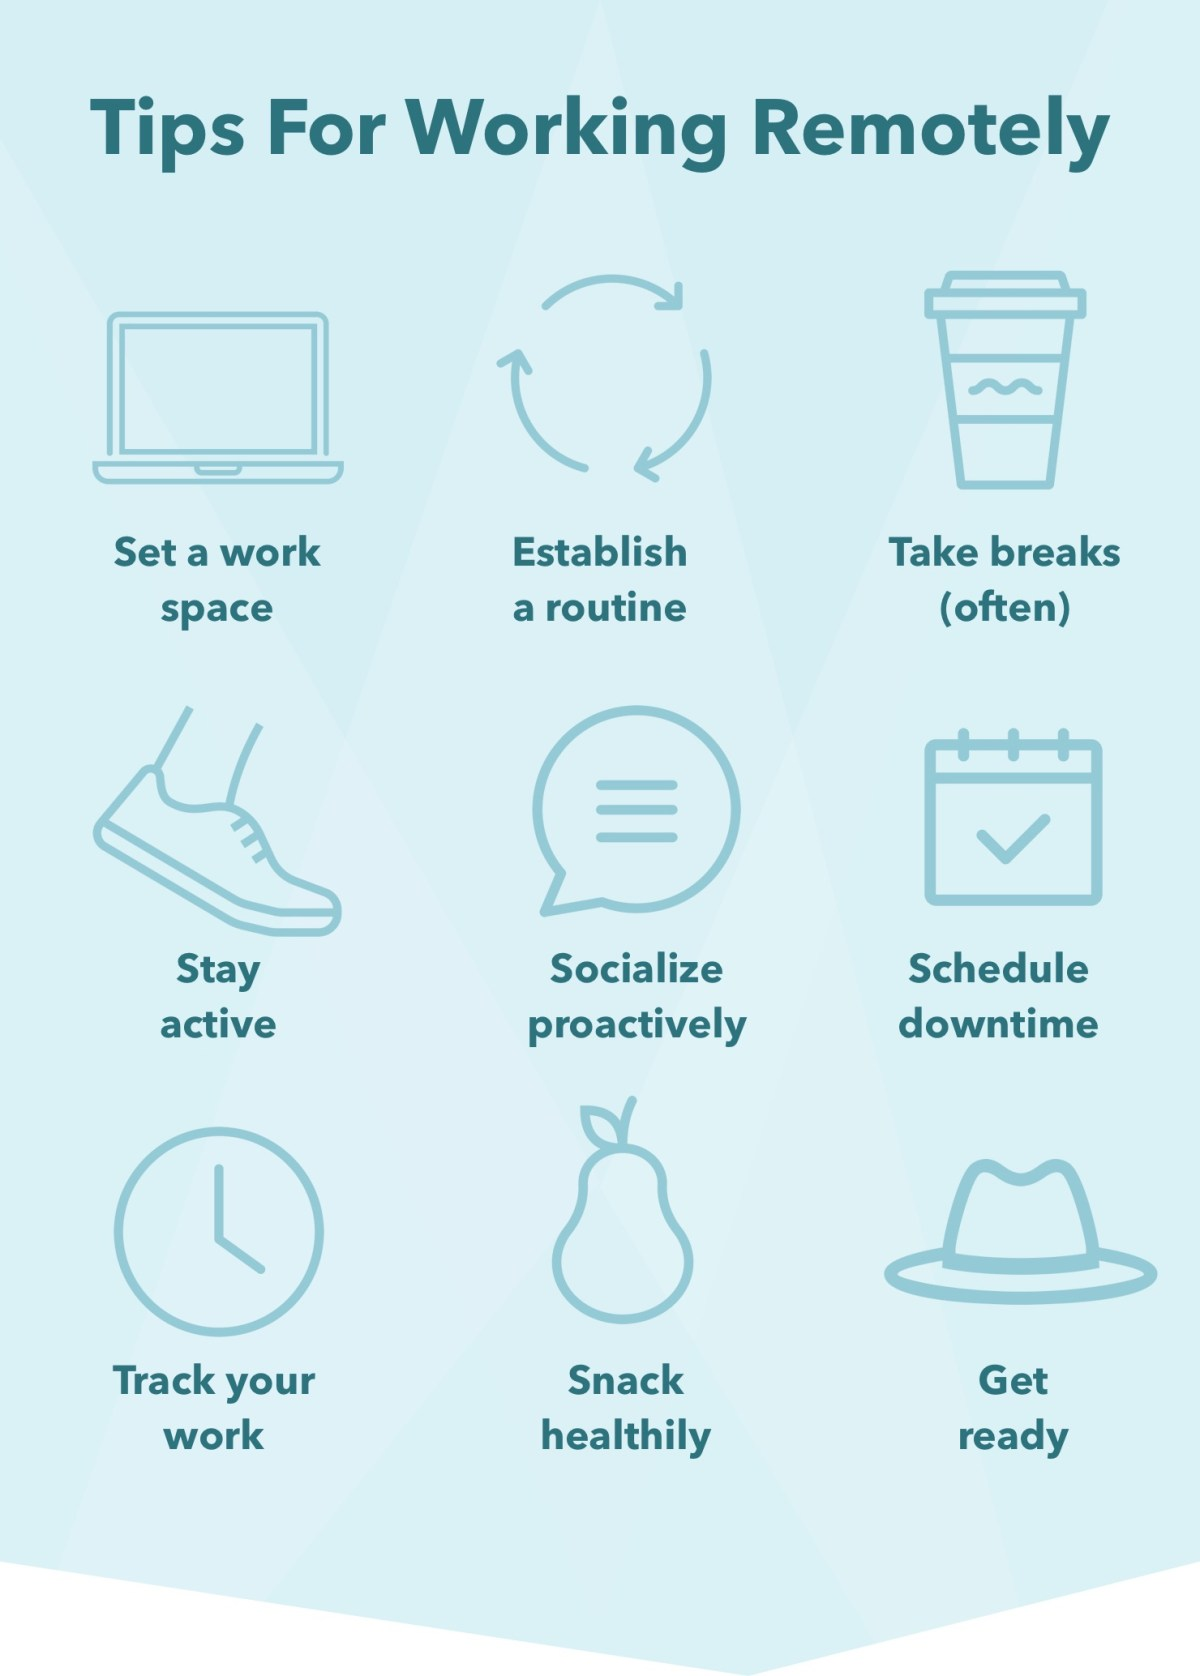 tips-for-working-remotely@2x